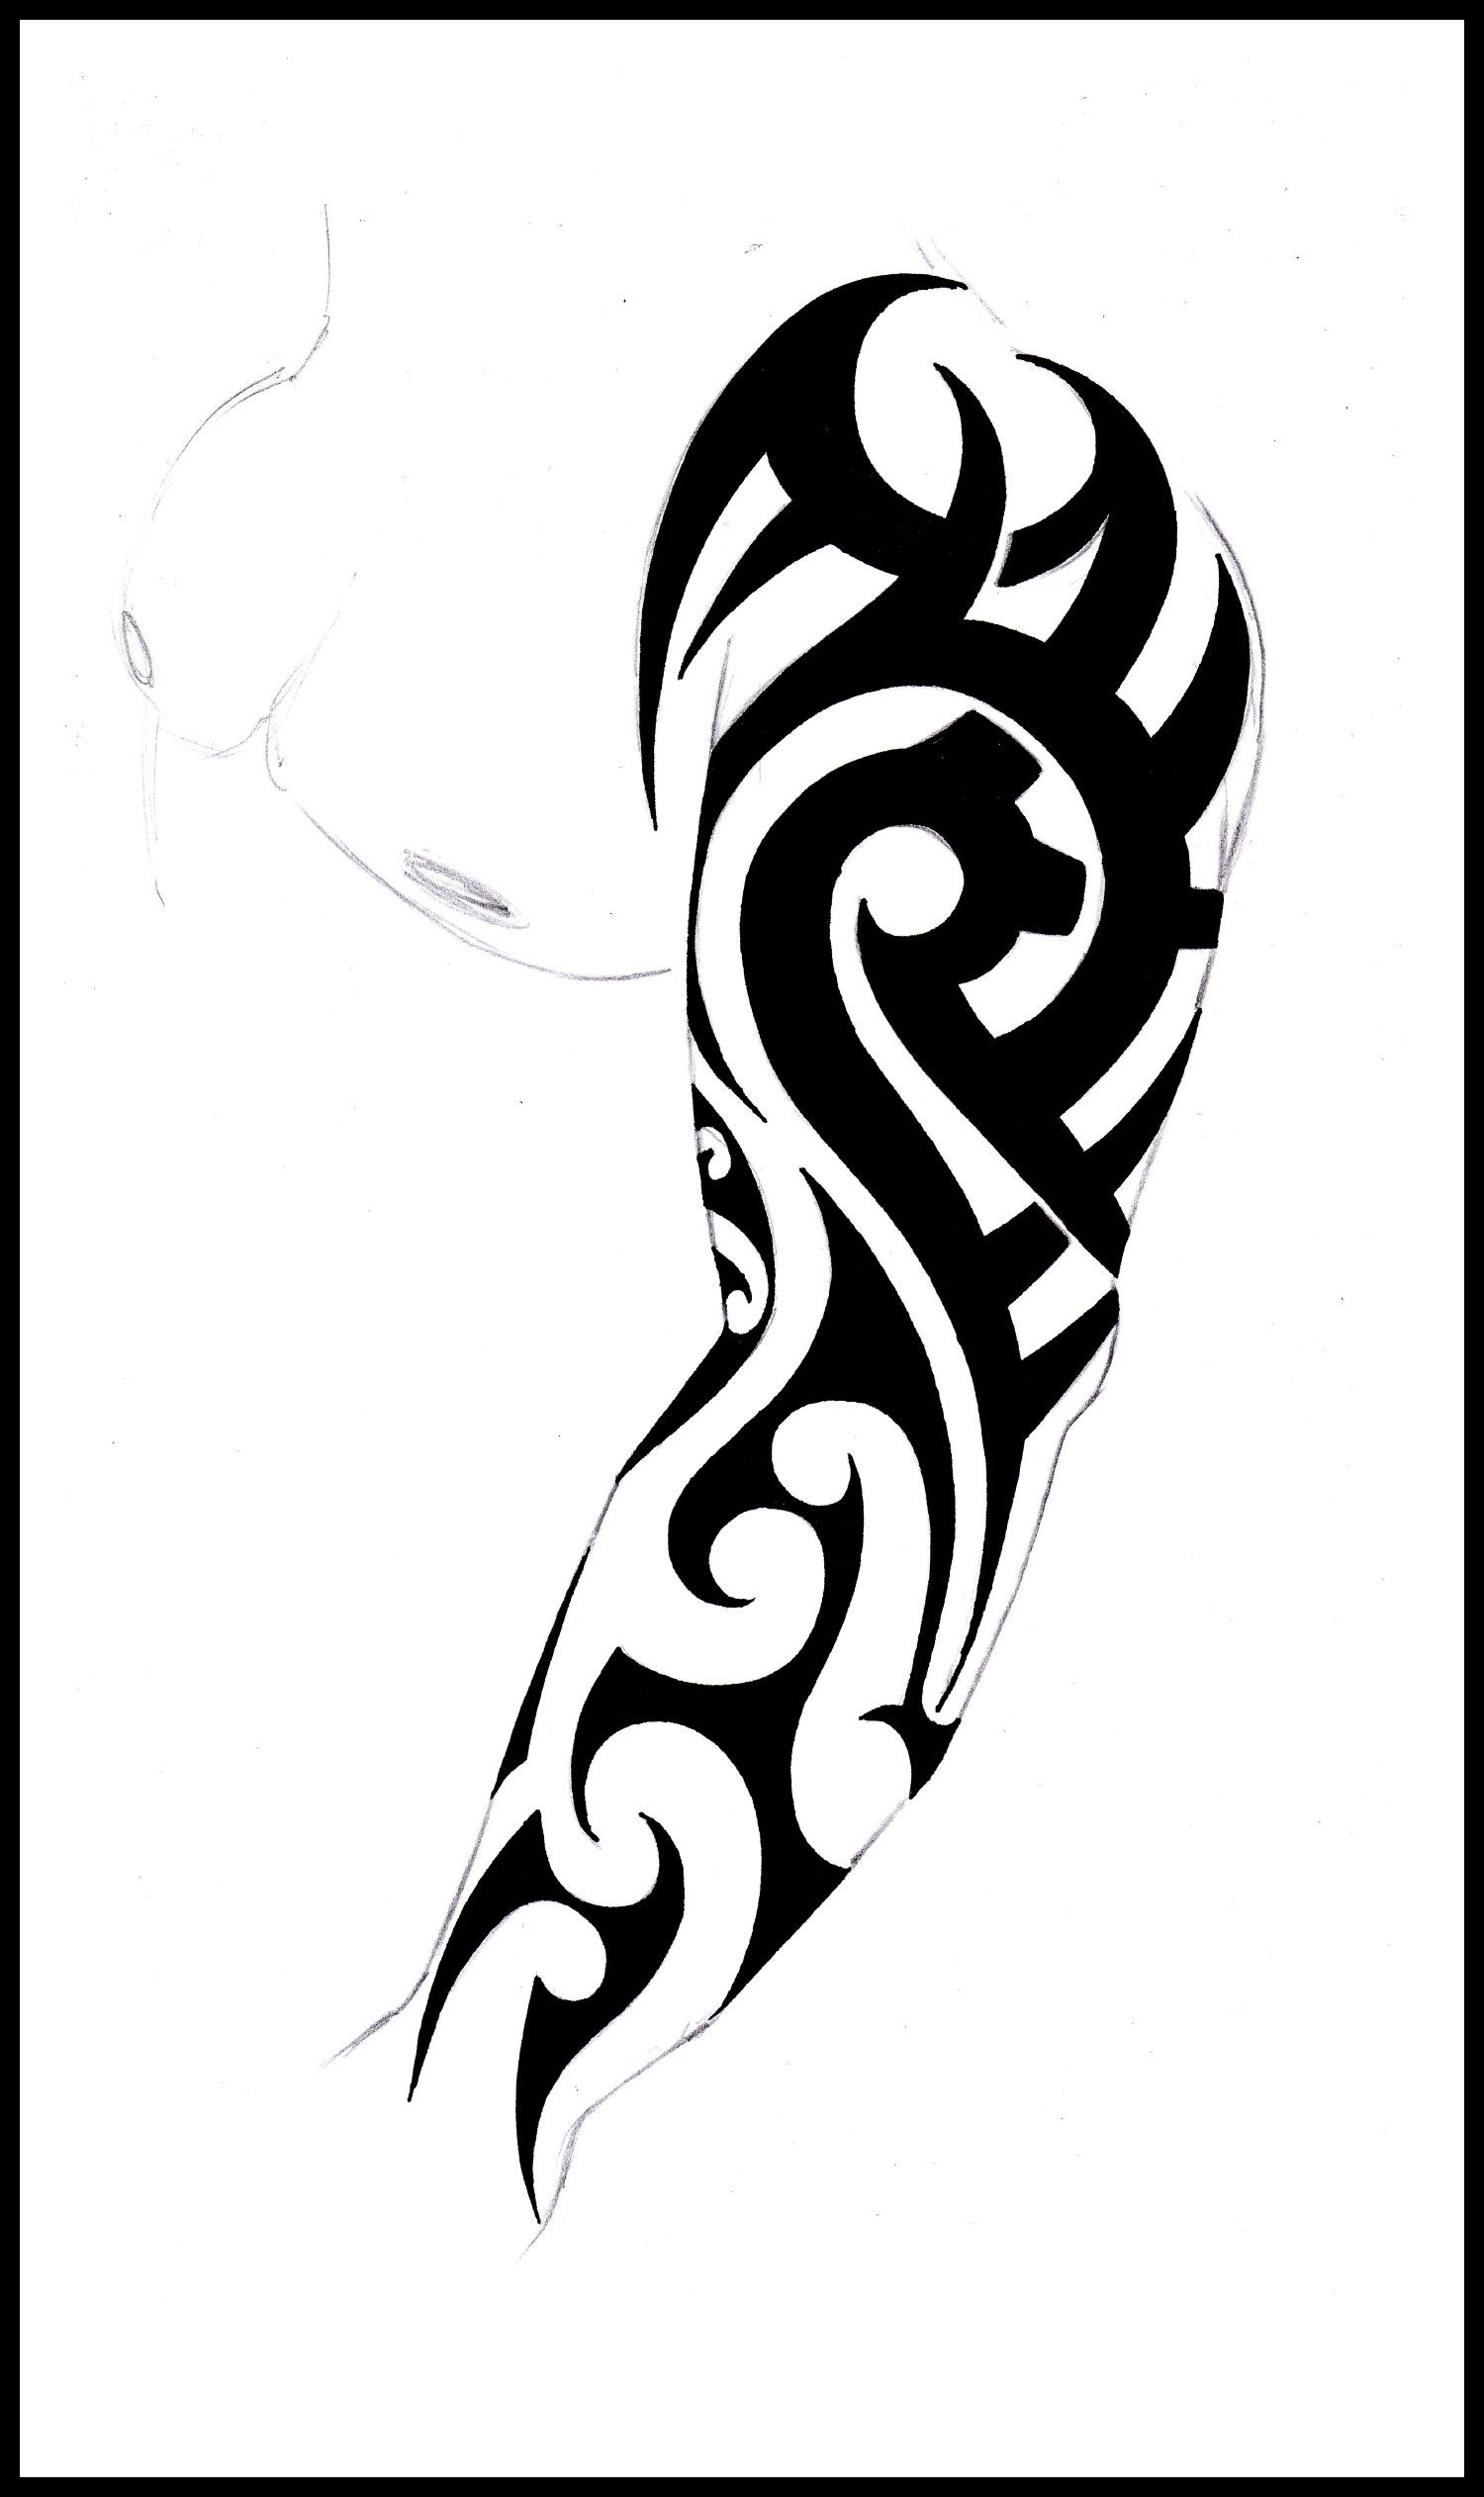 Tribal Sleeve Tattoo Stencil Tribal Full Sleeve Design Tribal Tattoos Tribal Tattoos Full Sleeve Tattoo Design Tattoo Sleeve Designs